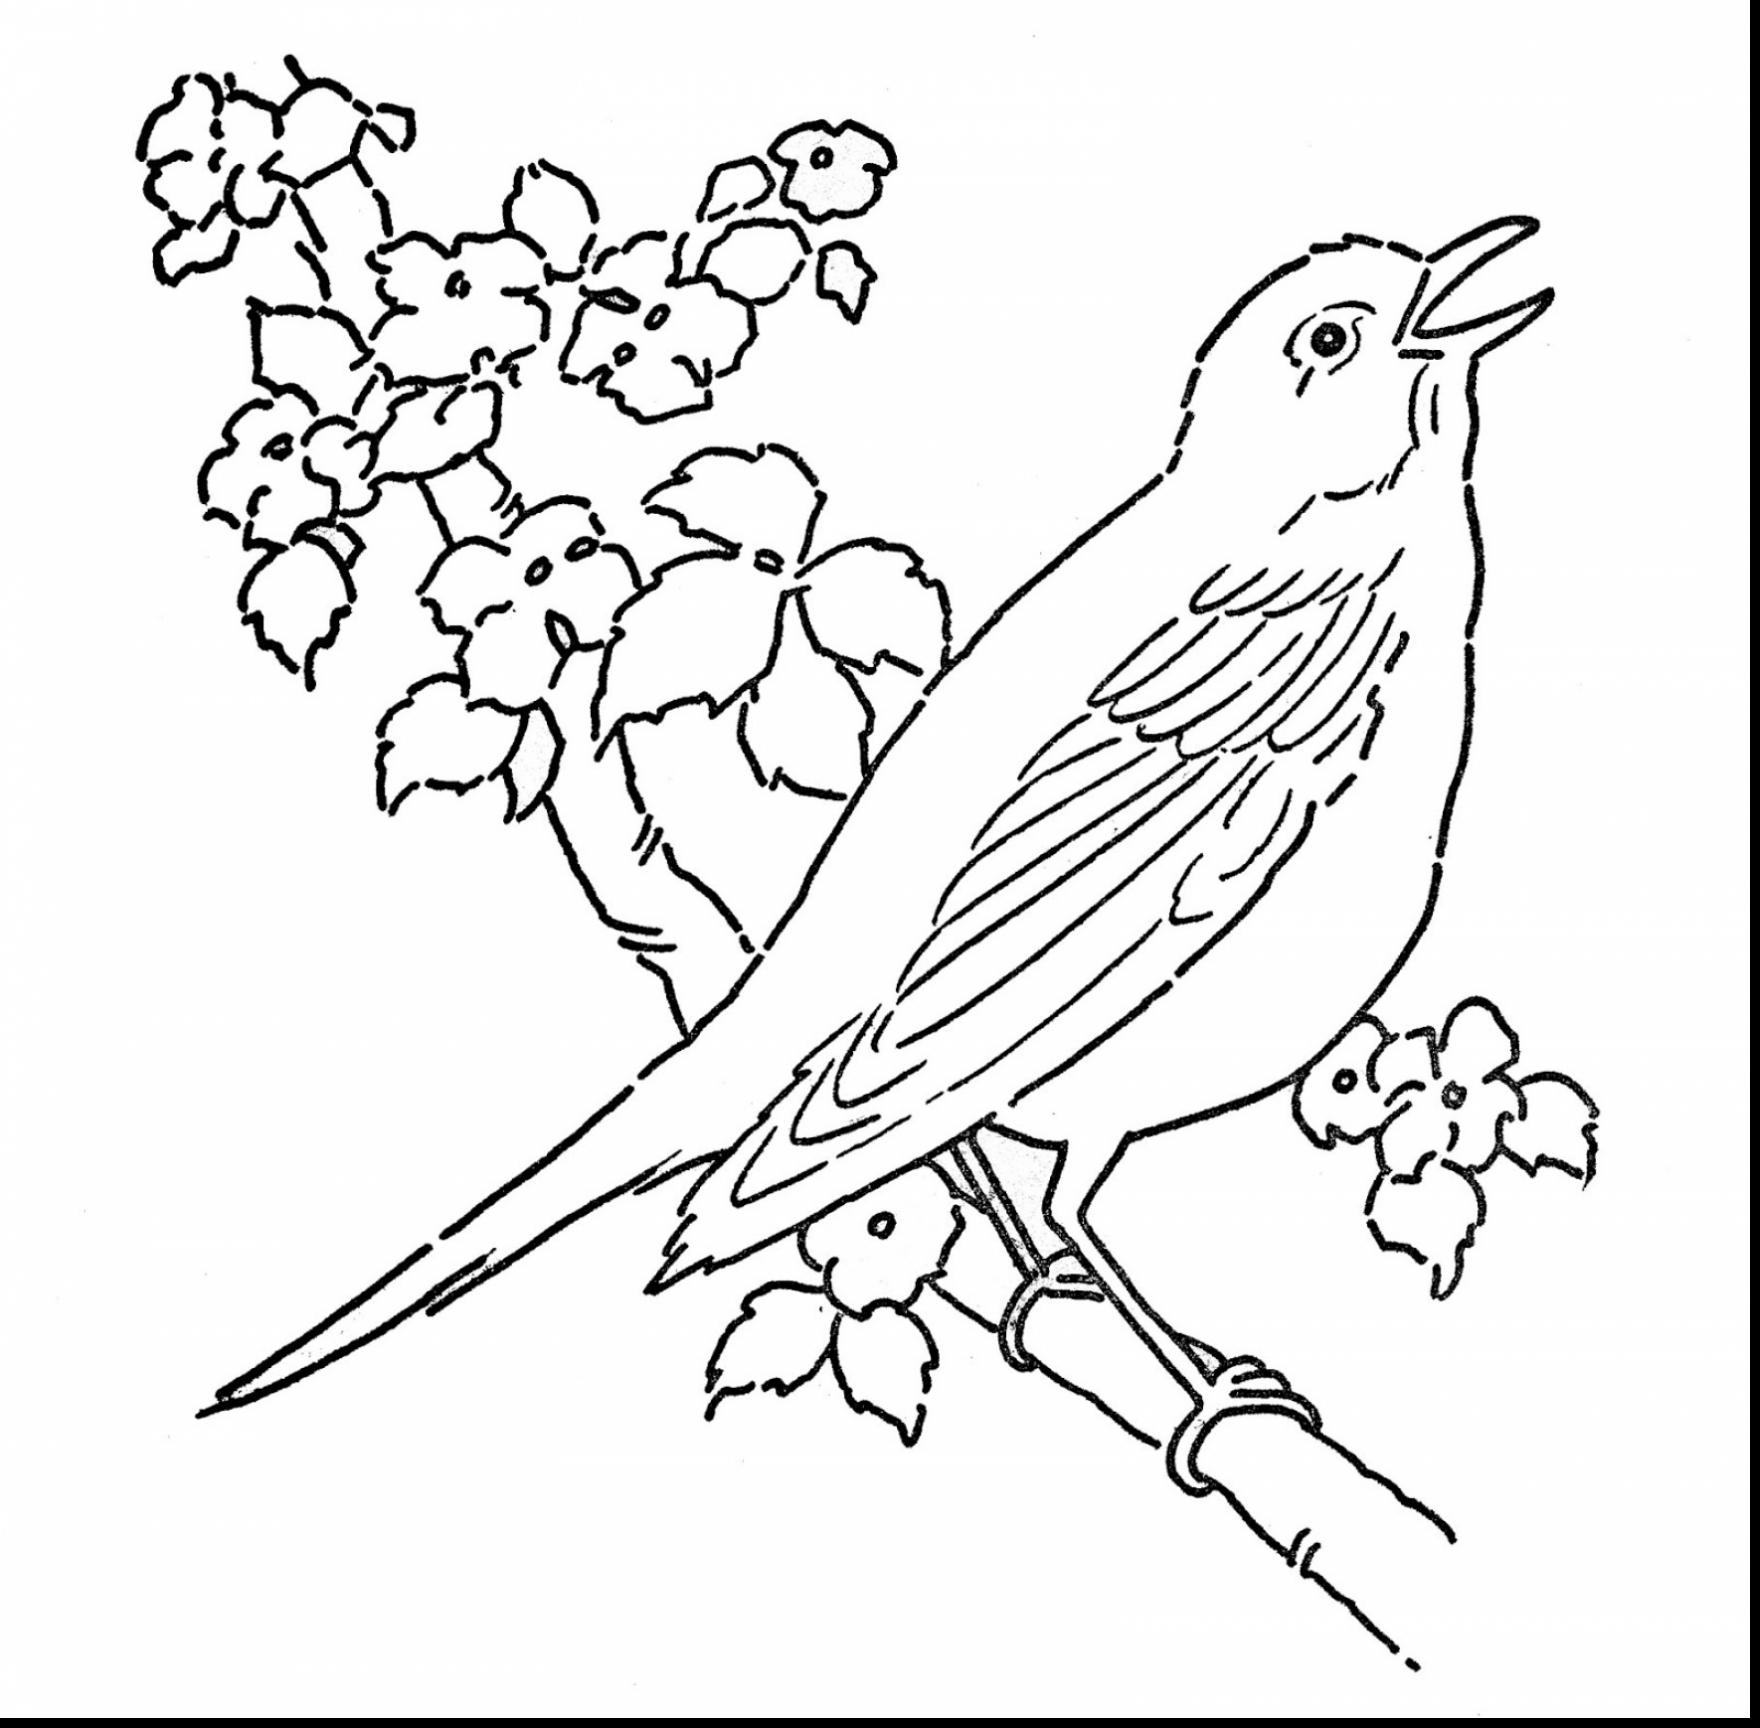 Birds Images Drawing at GetDrawings.com | Free for personal use ...